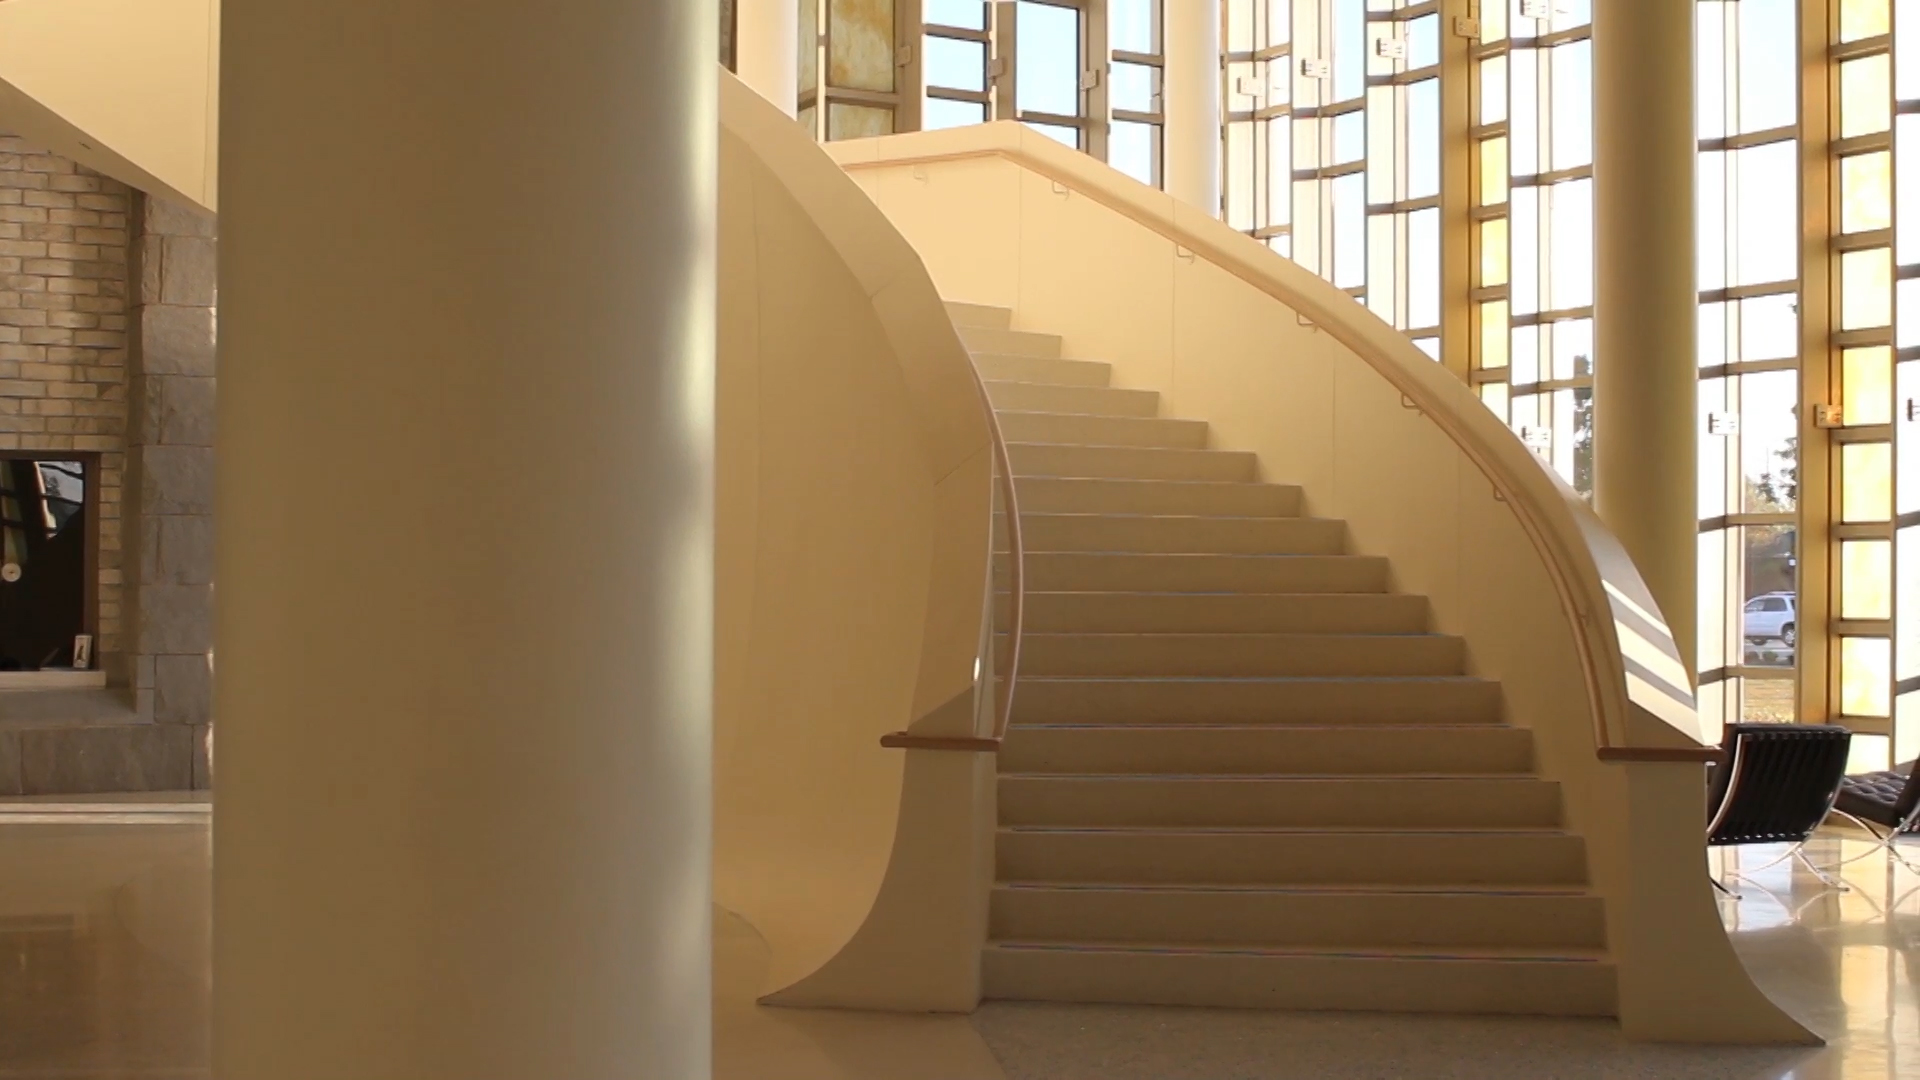 Staircase in the PAC